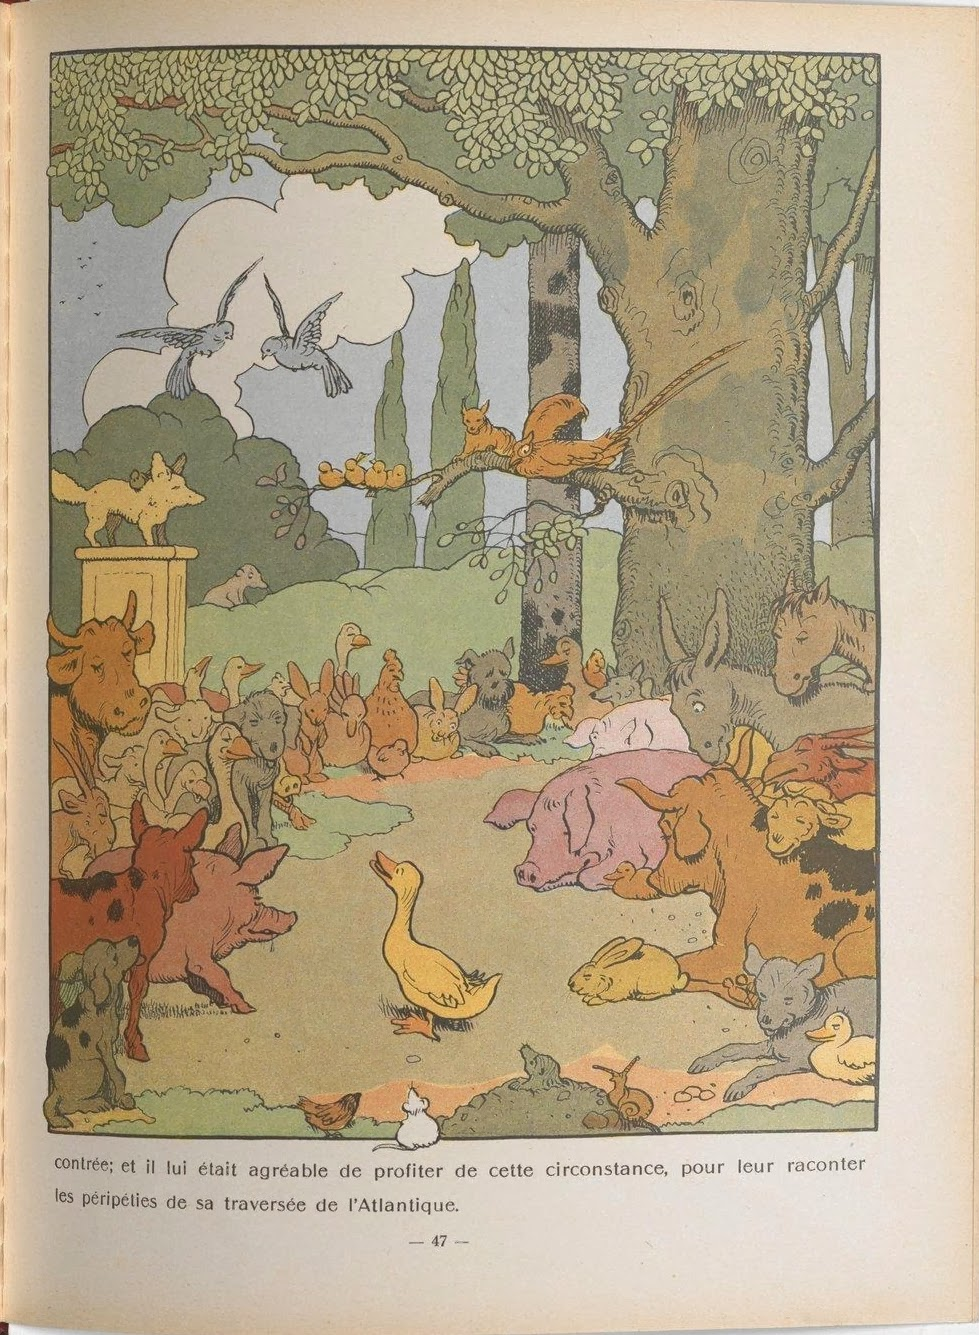 full page colour book illustration of domestic (talking) animals under a tree